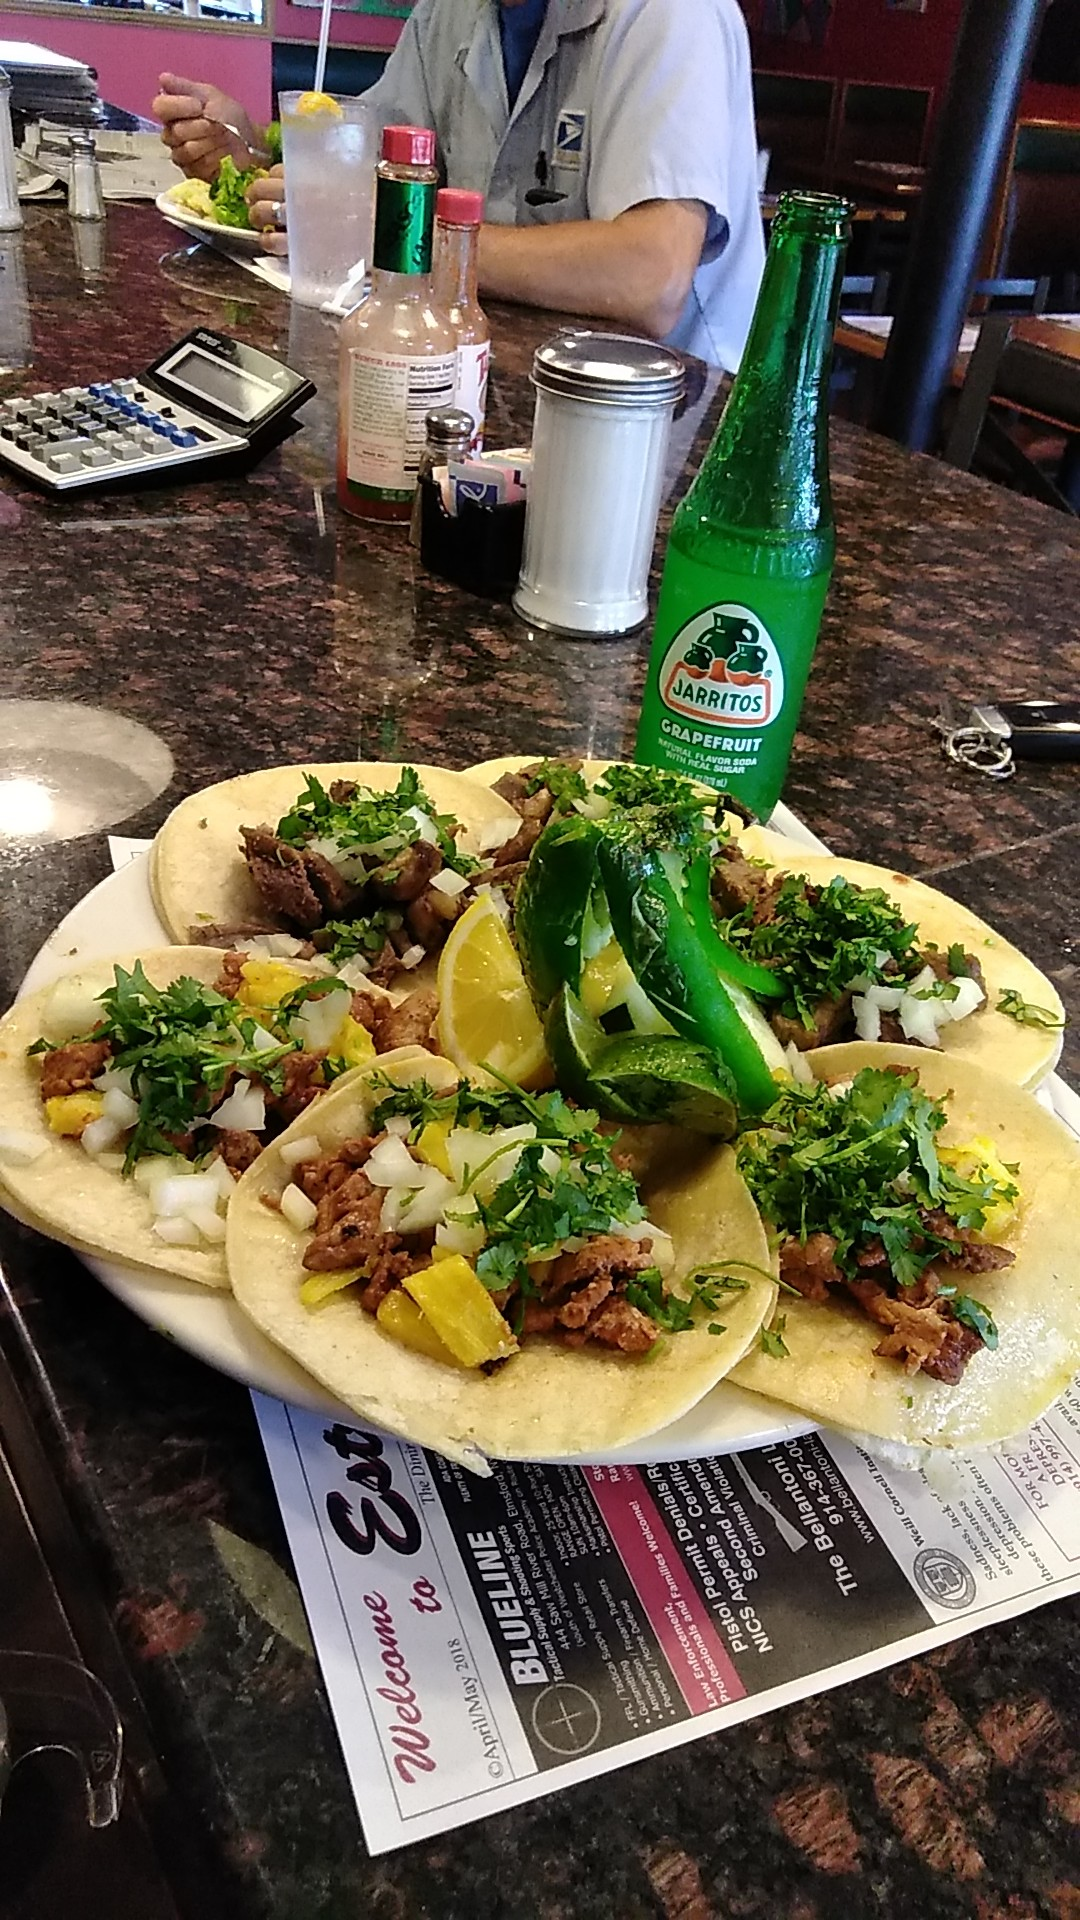 Six Tacos al Pastor or Lengua, soft tacos marinated pork with grilled pineapples or lengua with onions, cilantro, both served with rice & beans